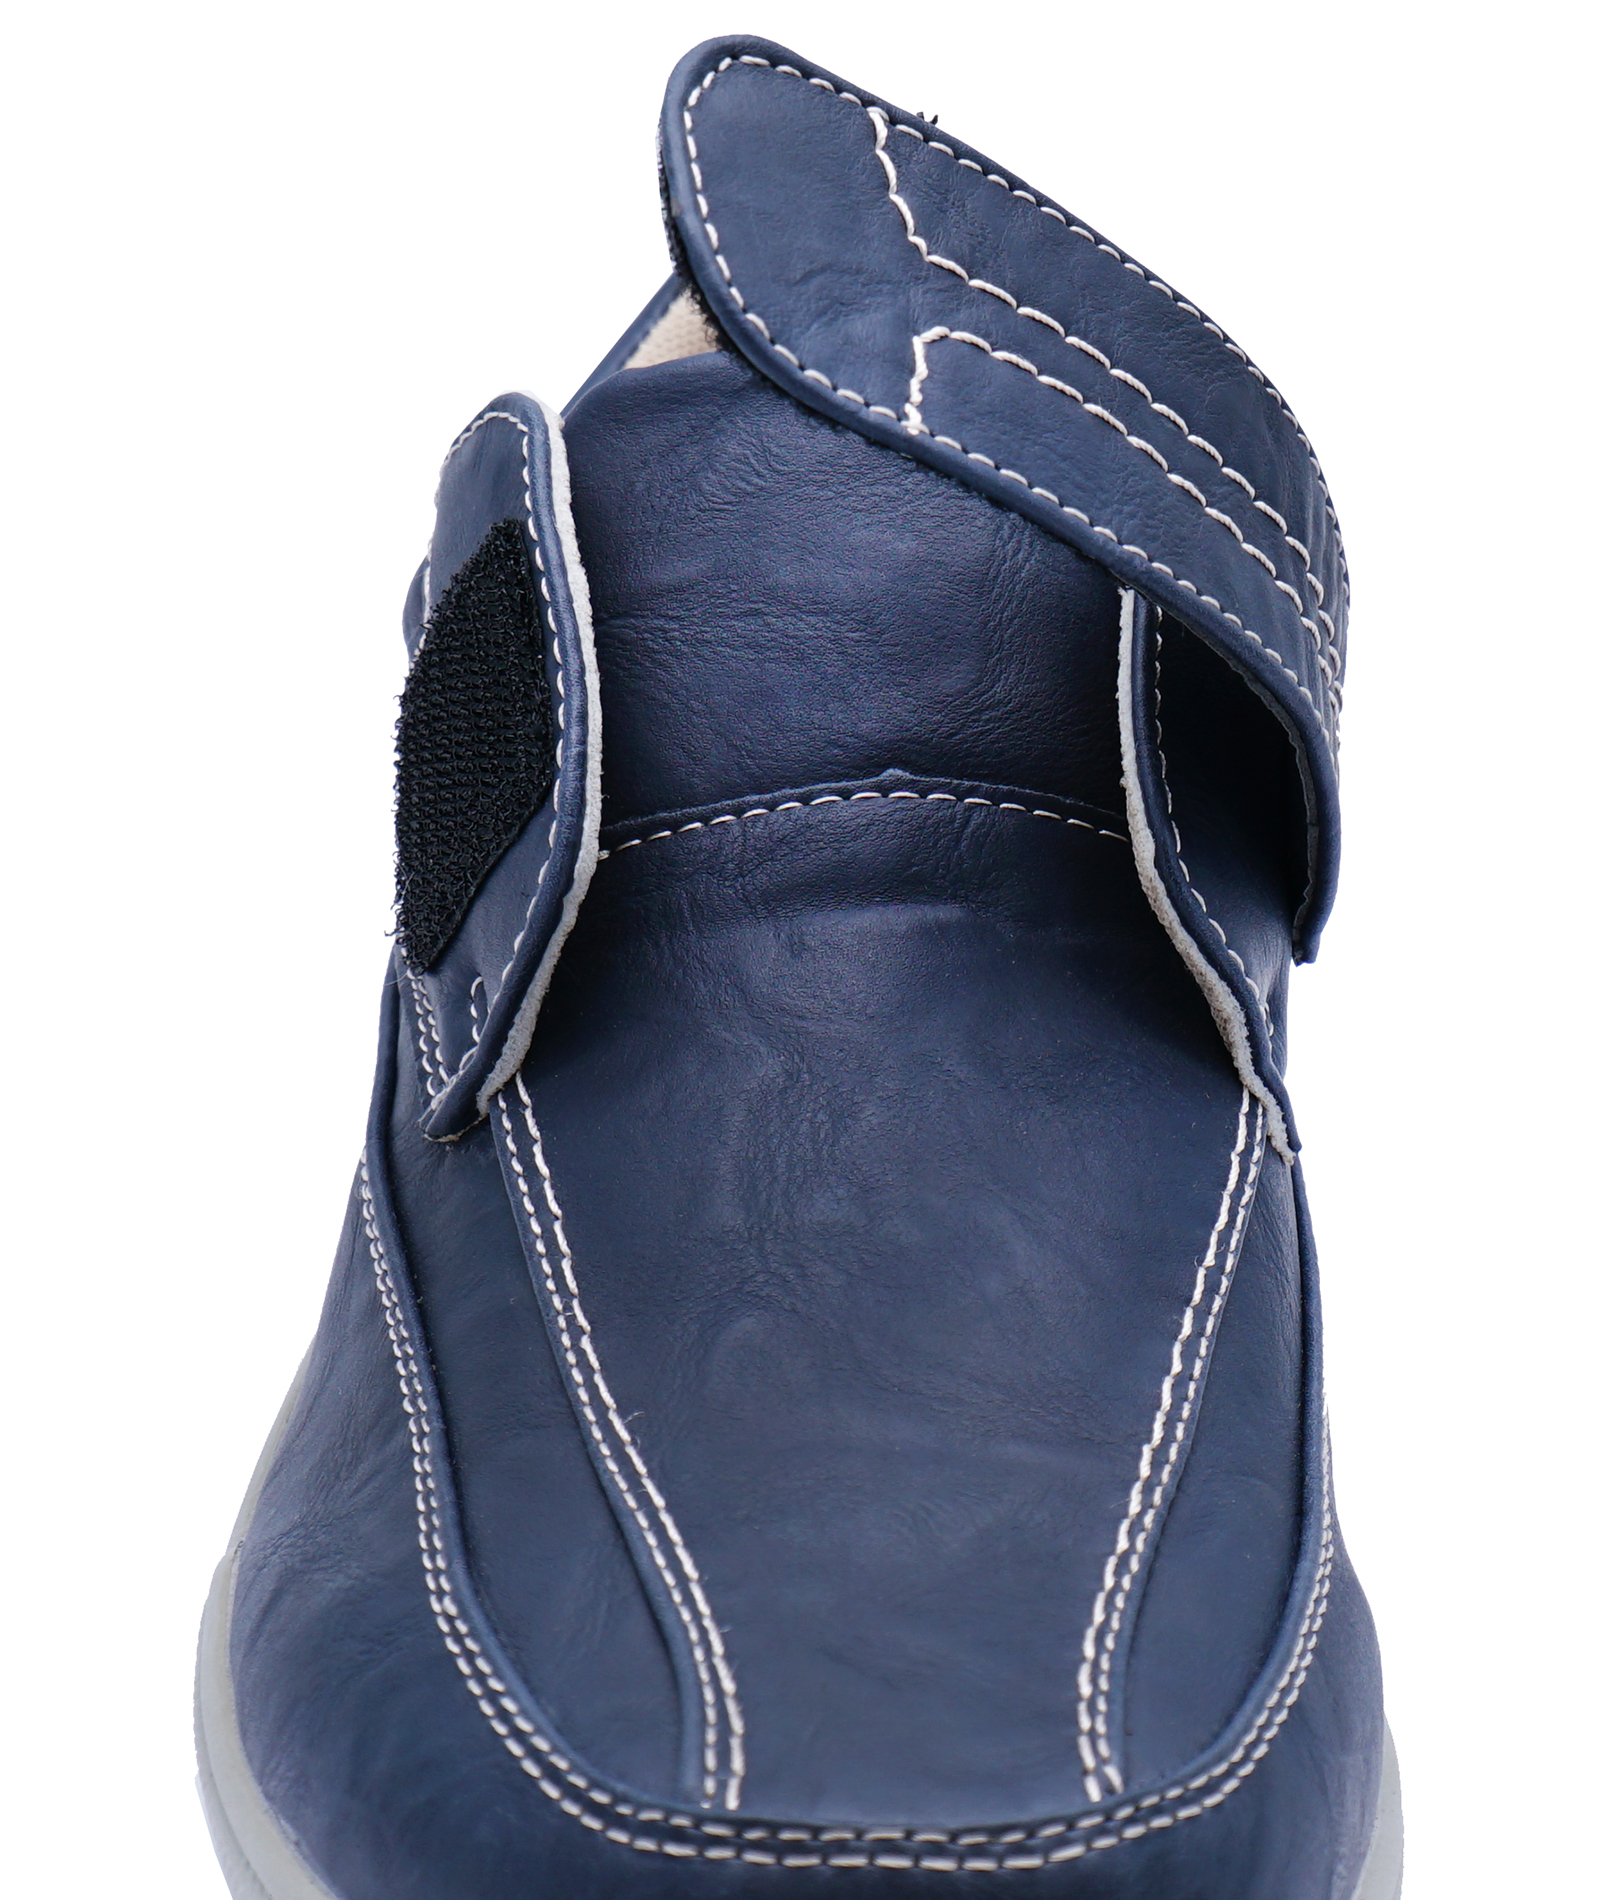 thumbnail 8 - MENS-NAVY-TOUCH-STRAP-COMFY-LIGHTWEIGHT-SMART-CASUAL-LOAFERS-DECK-SHOES-6-12